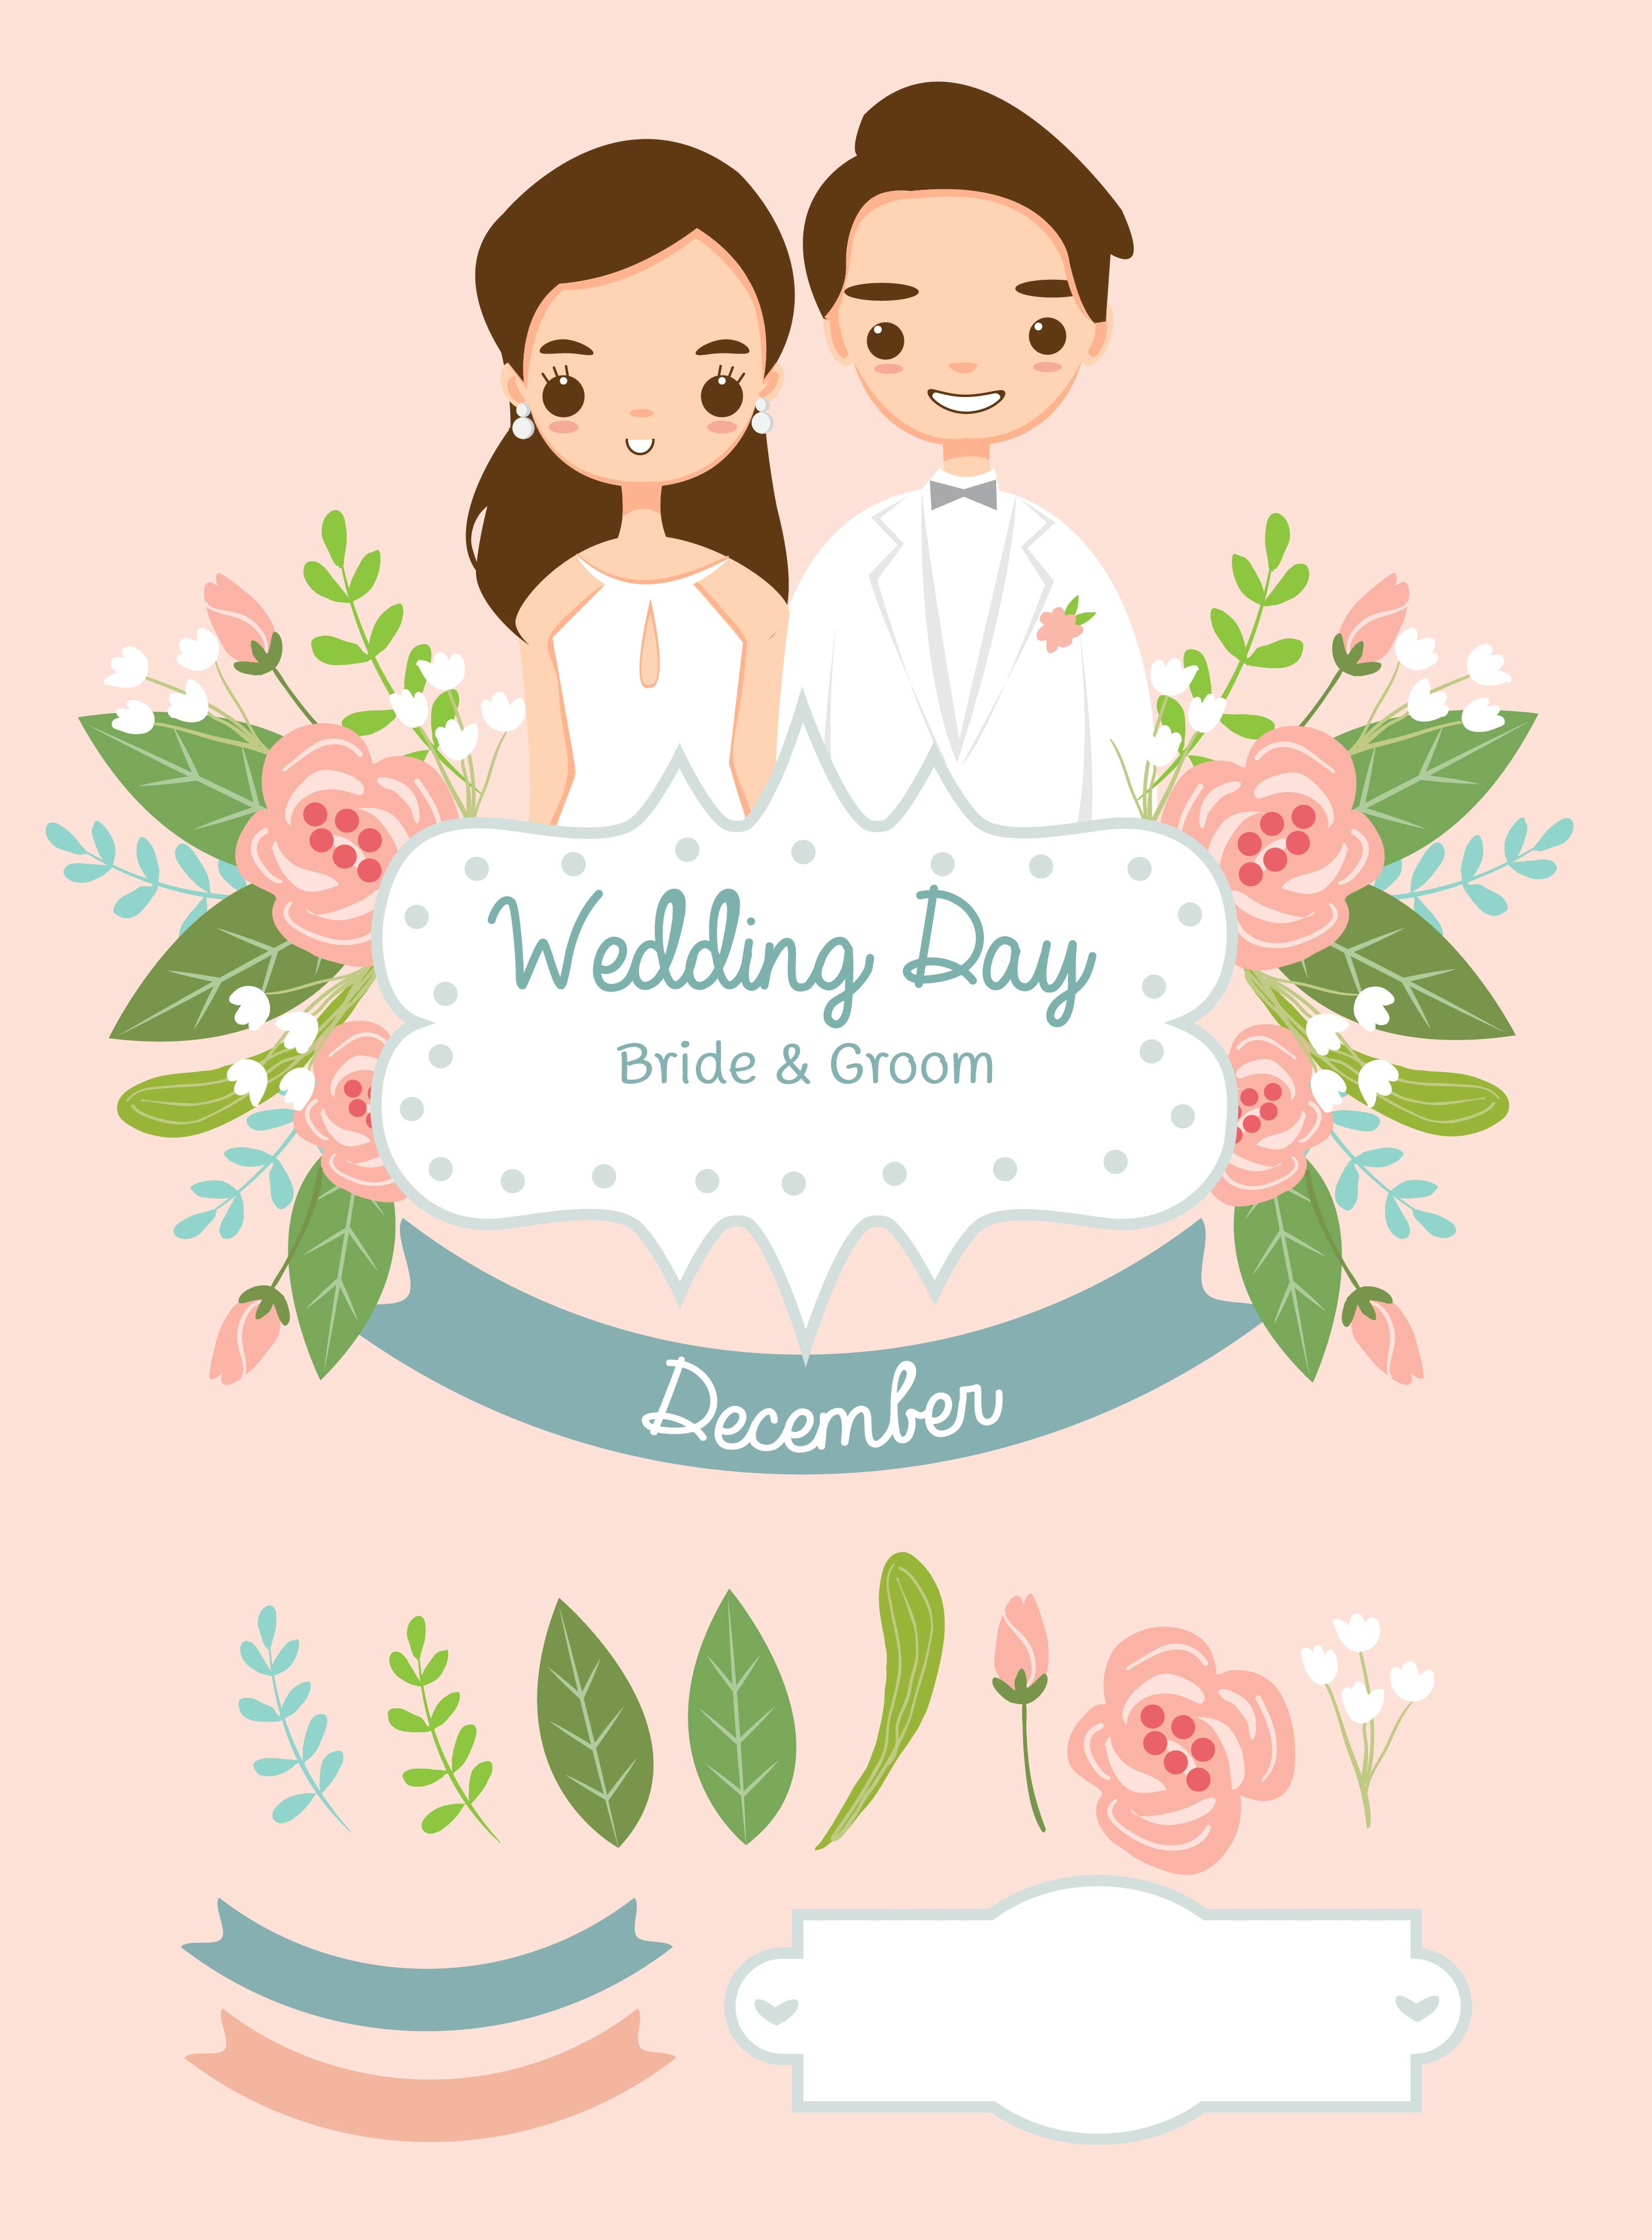 Cute Bride And Groom And Elements For Wedding Invitations Card Download Free Vectors Clipart Graphics Vector Art